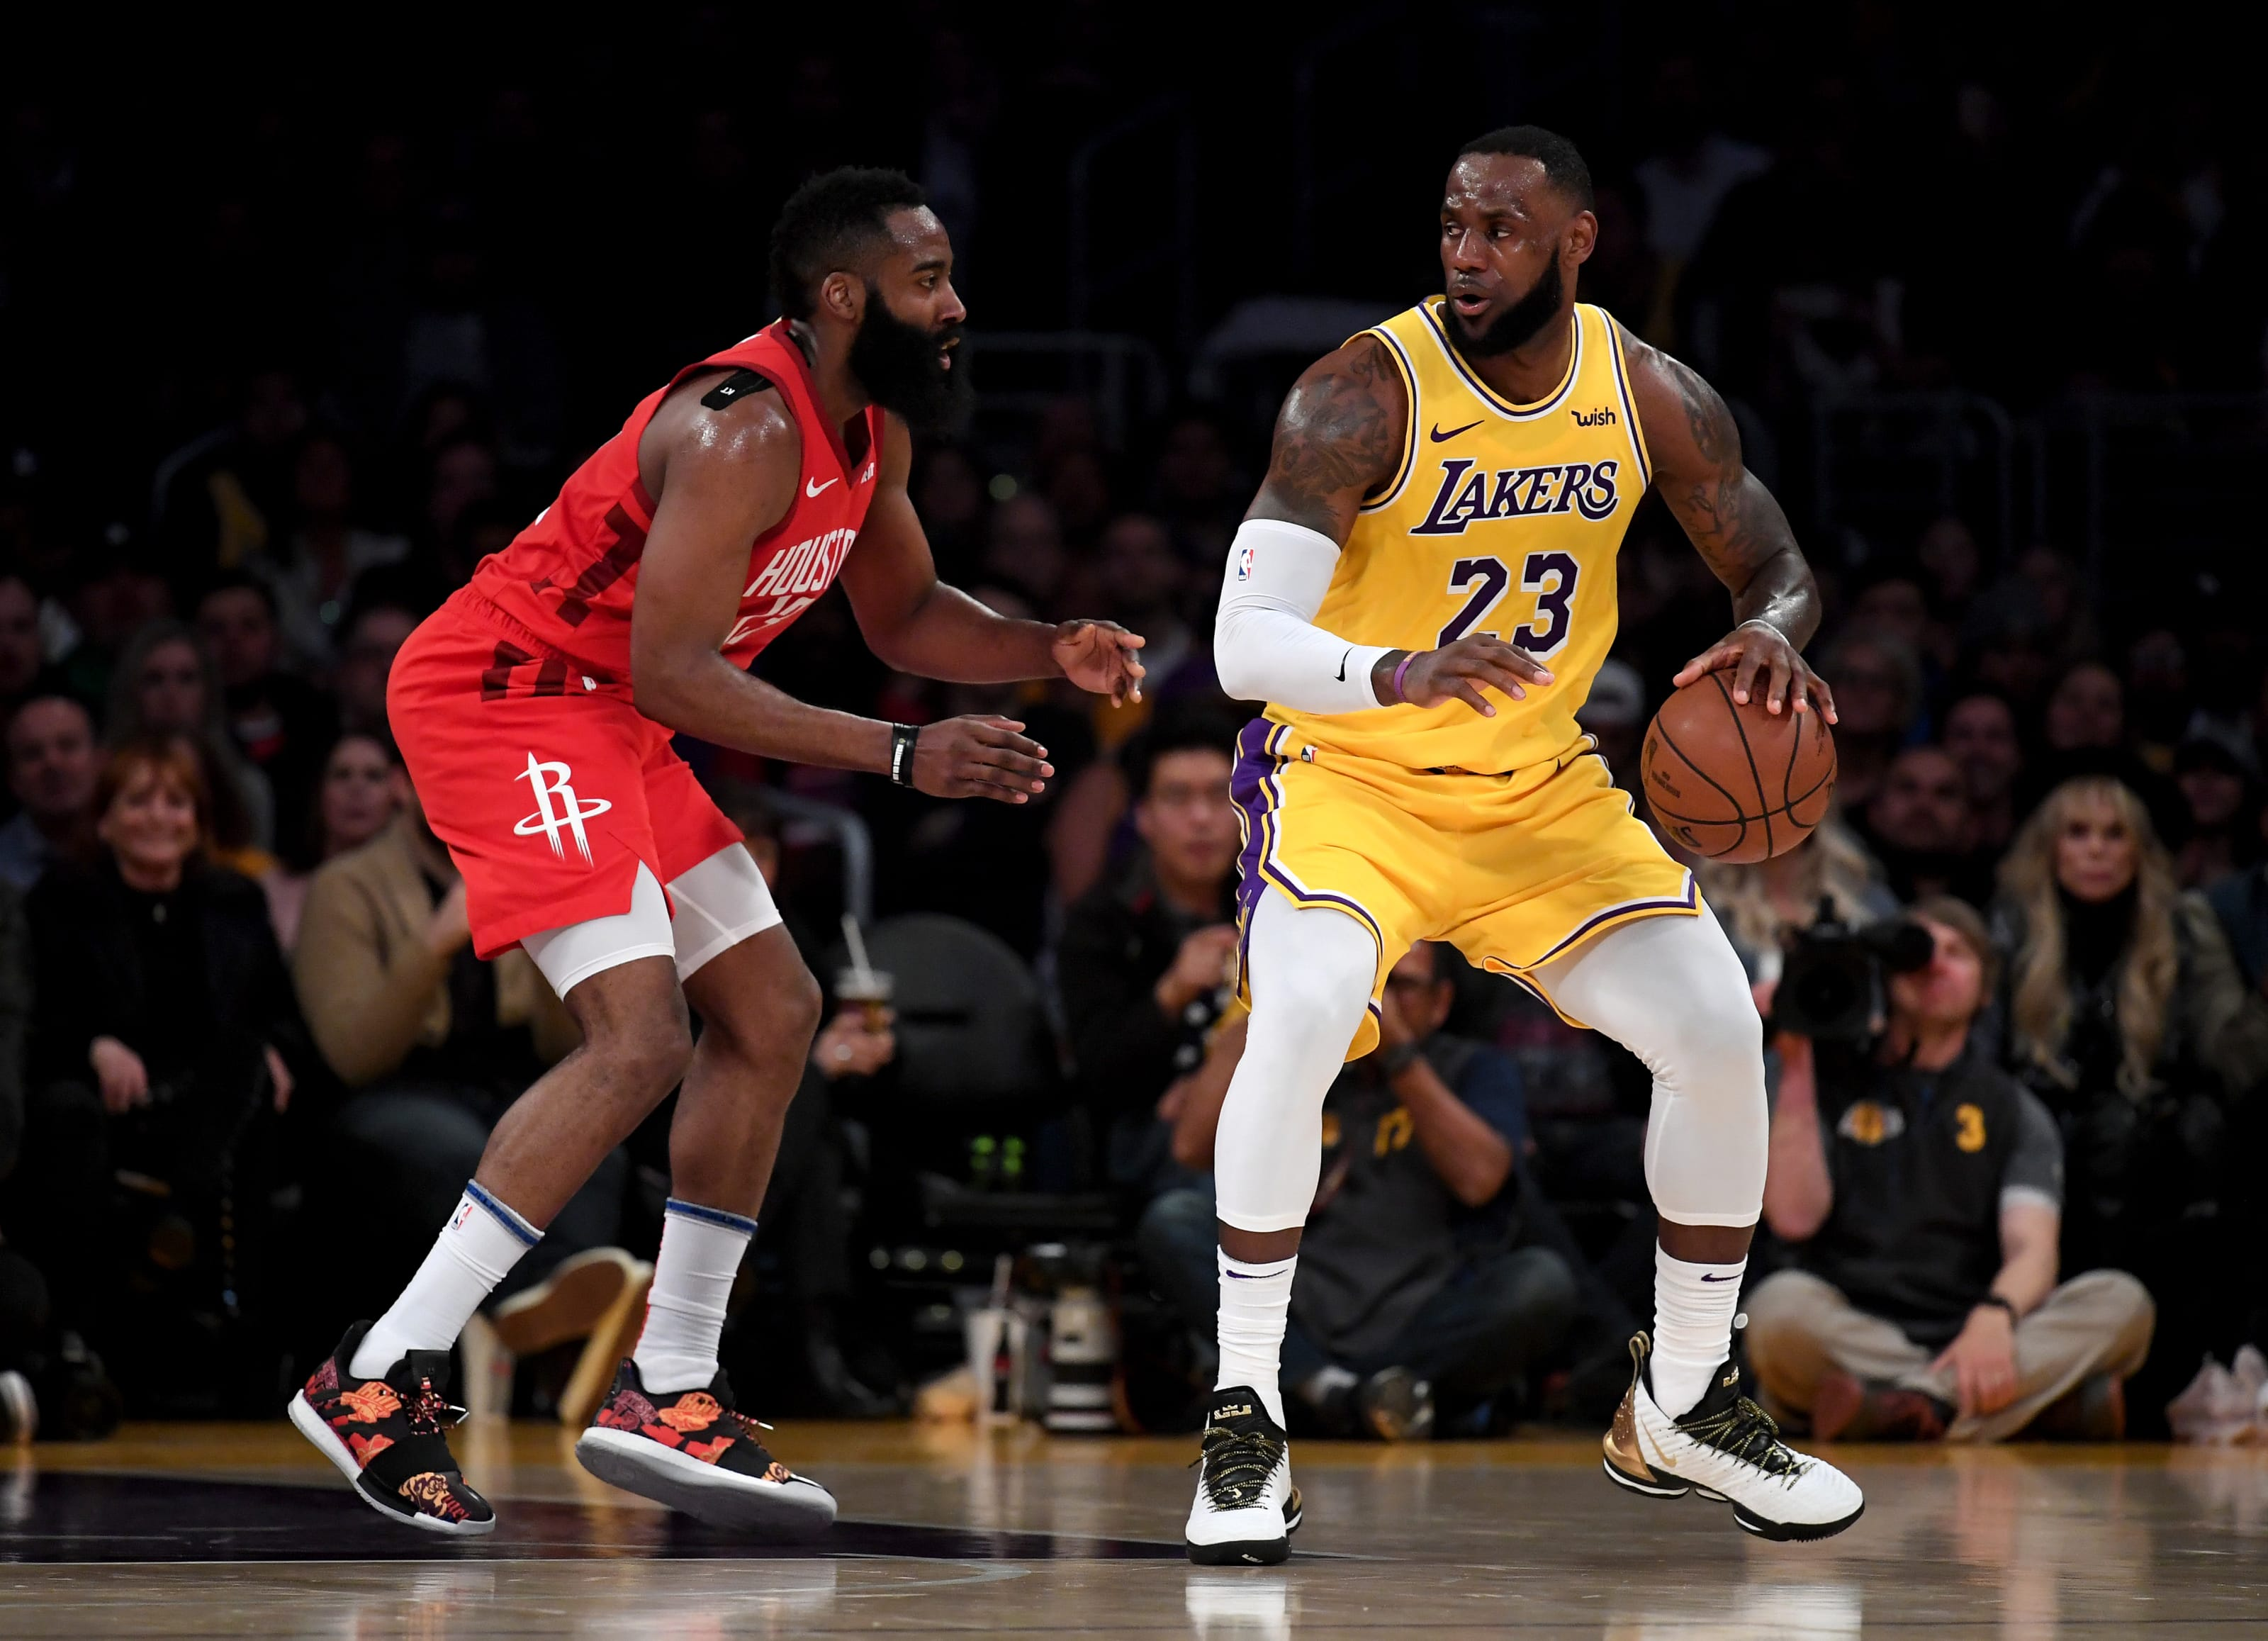 LeBron James #23 of the Los Angeles Lakers backs in on James Harden #13 of the Houston Rockets